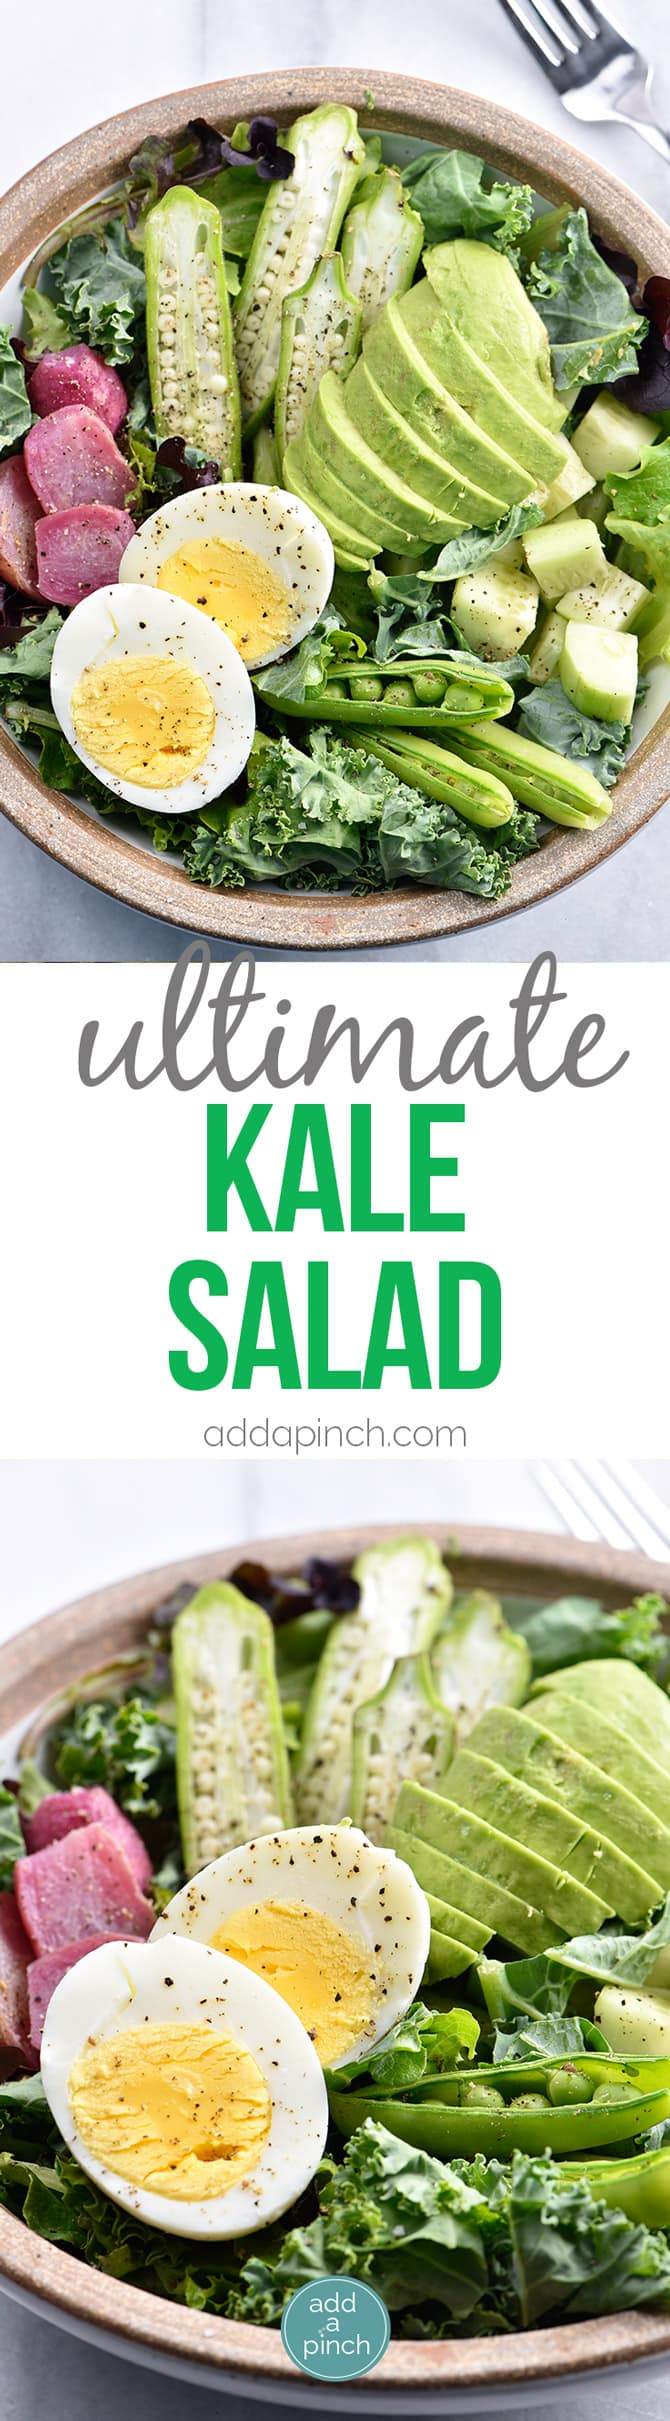 Ultimate Kale Salad Recipe - This Ultimate Kale Salad recipe is the kale salad of my dreams! Filled with crunchy vegetables, creamy avocado and topped with a bold dressing, it is glorious! // addapinch.com